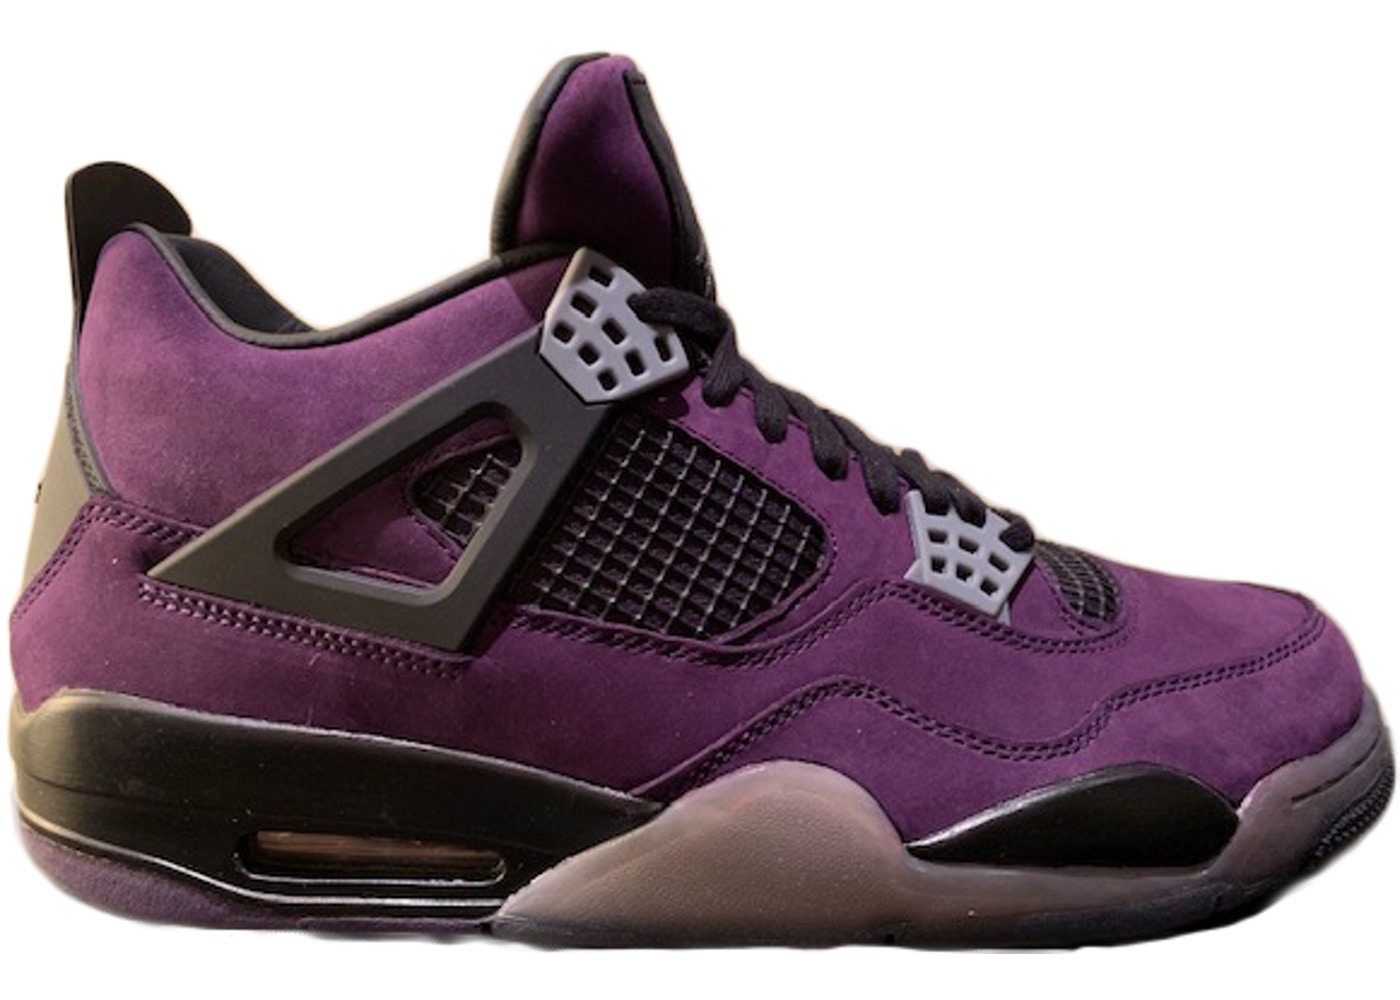 Retro Jordan 4 Scott Family Purplefriends And Travis OnPw0k